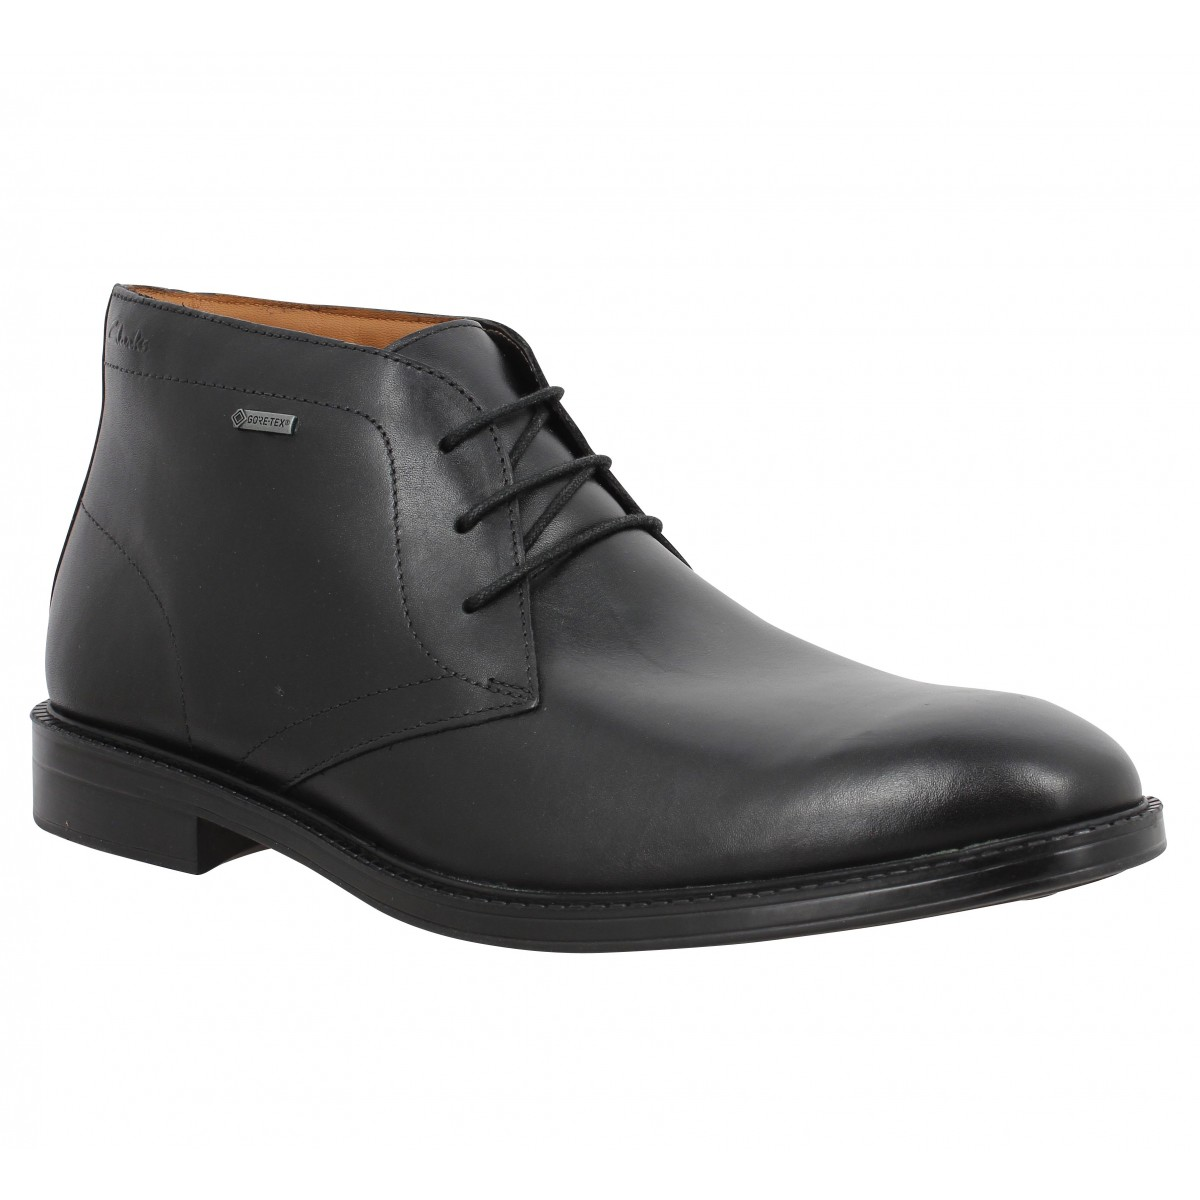 clarks chaussures pour homme vente en ligne. Black Bedroom Furniture Sets. Home Design Ideas